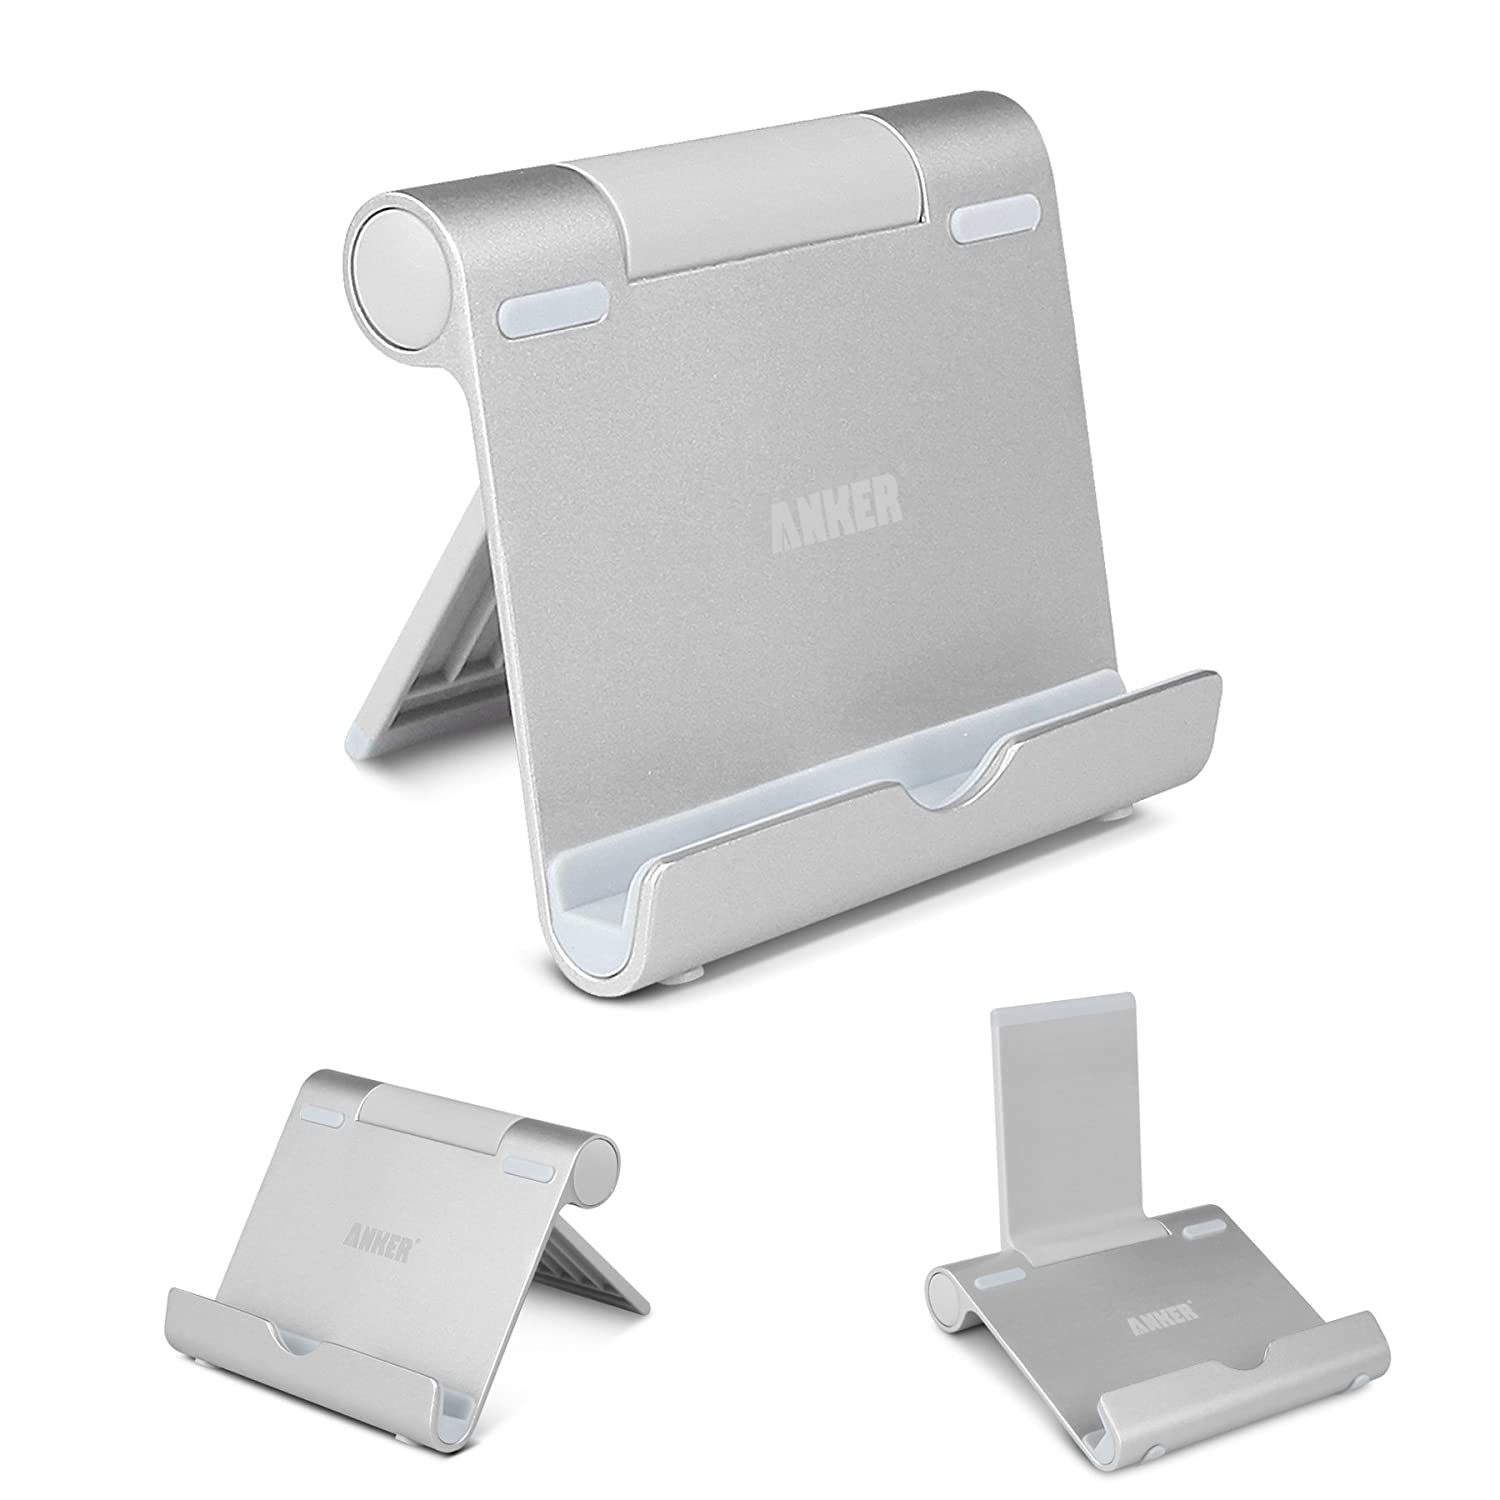 Multi-Angle Portable Stand for Tablets, E-Readers & Smart Phones